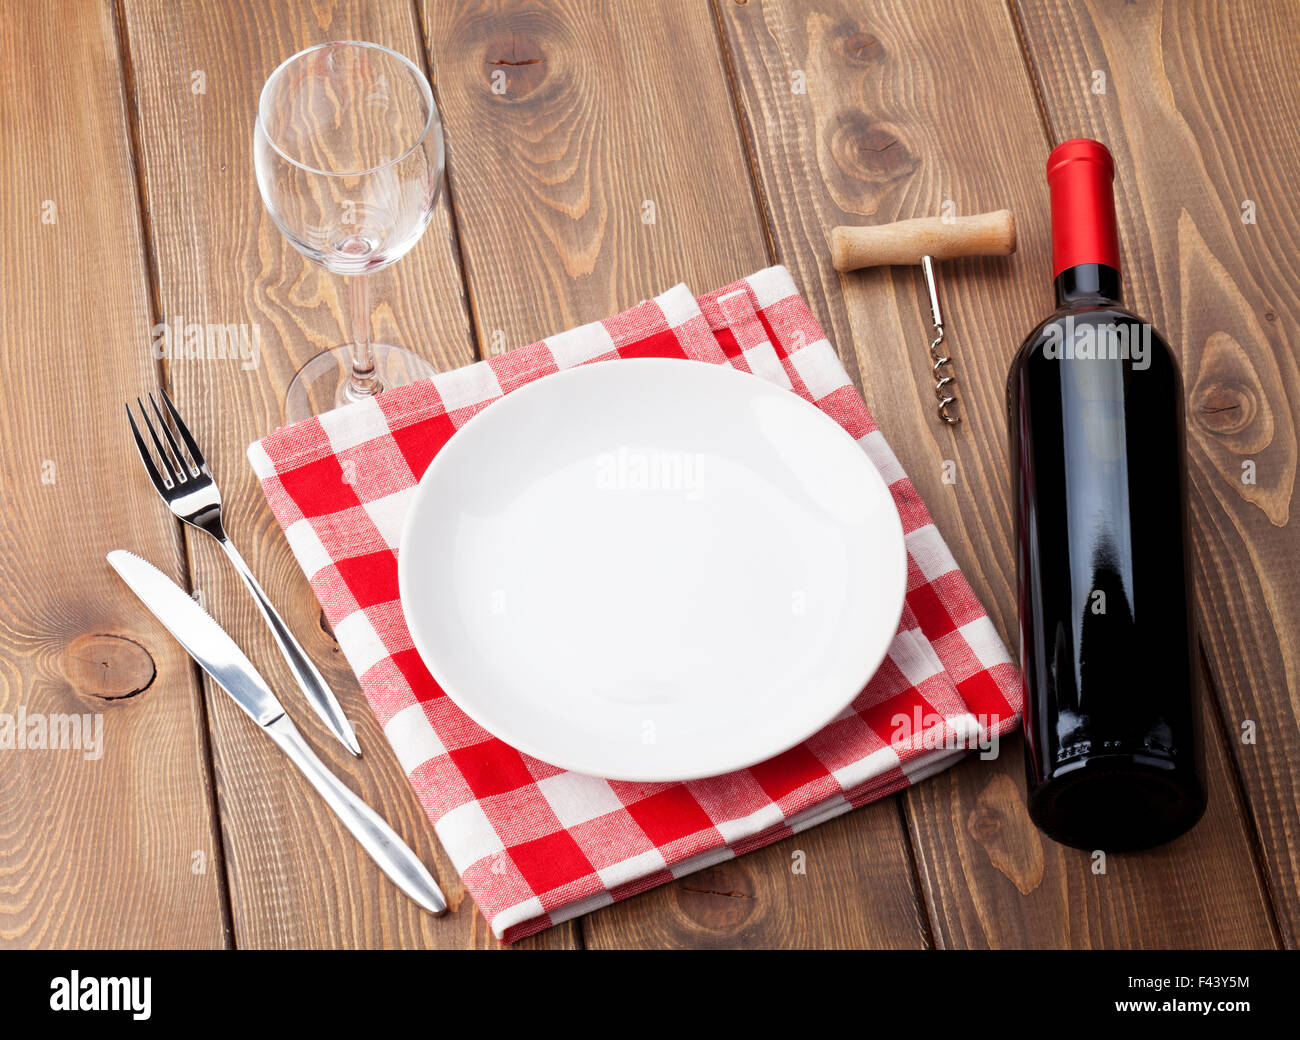 Table setting with empty plate, wine glass and red wine bottle. Top ...